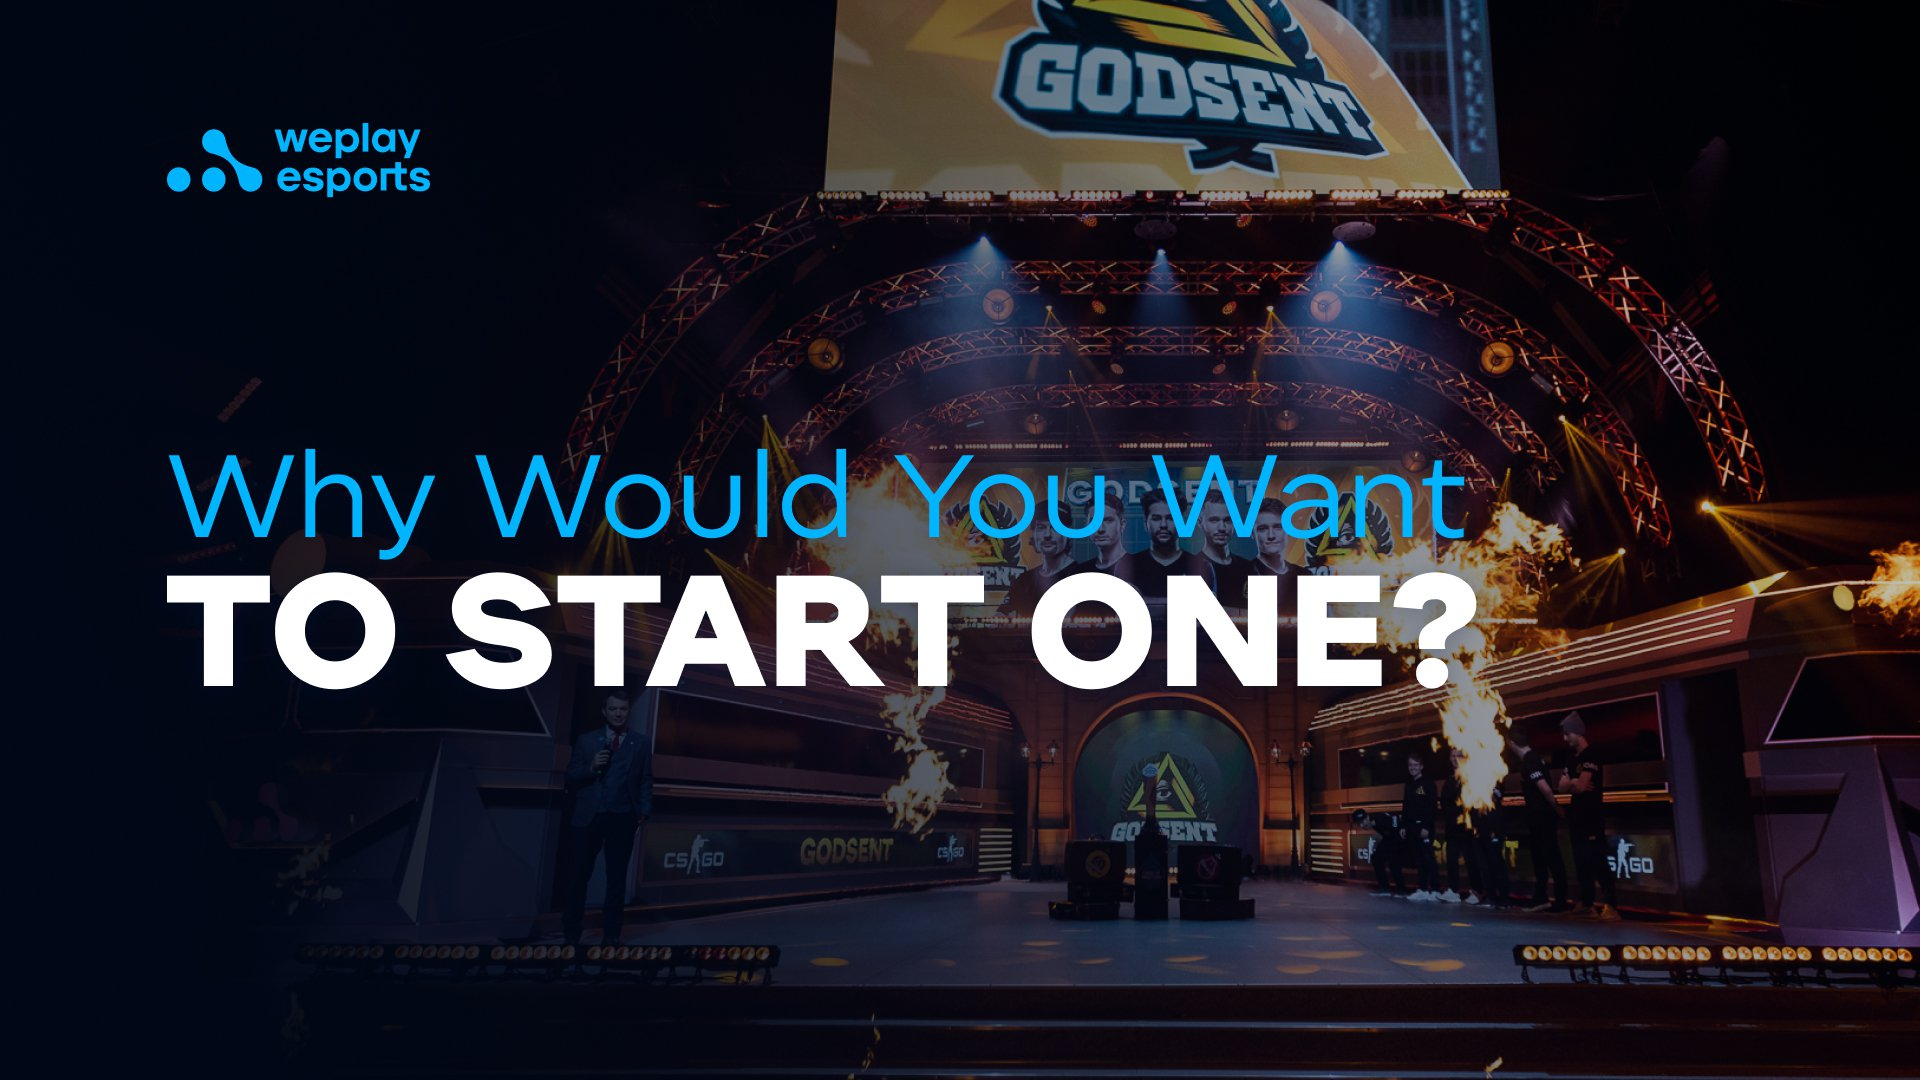 Why Would You Want To Start One?